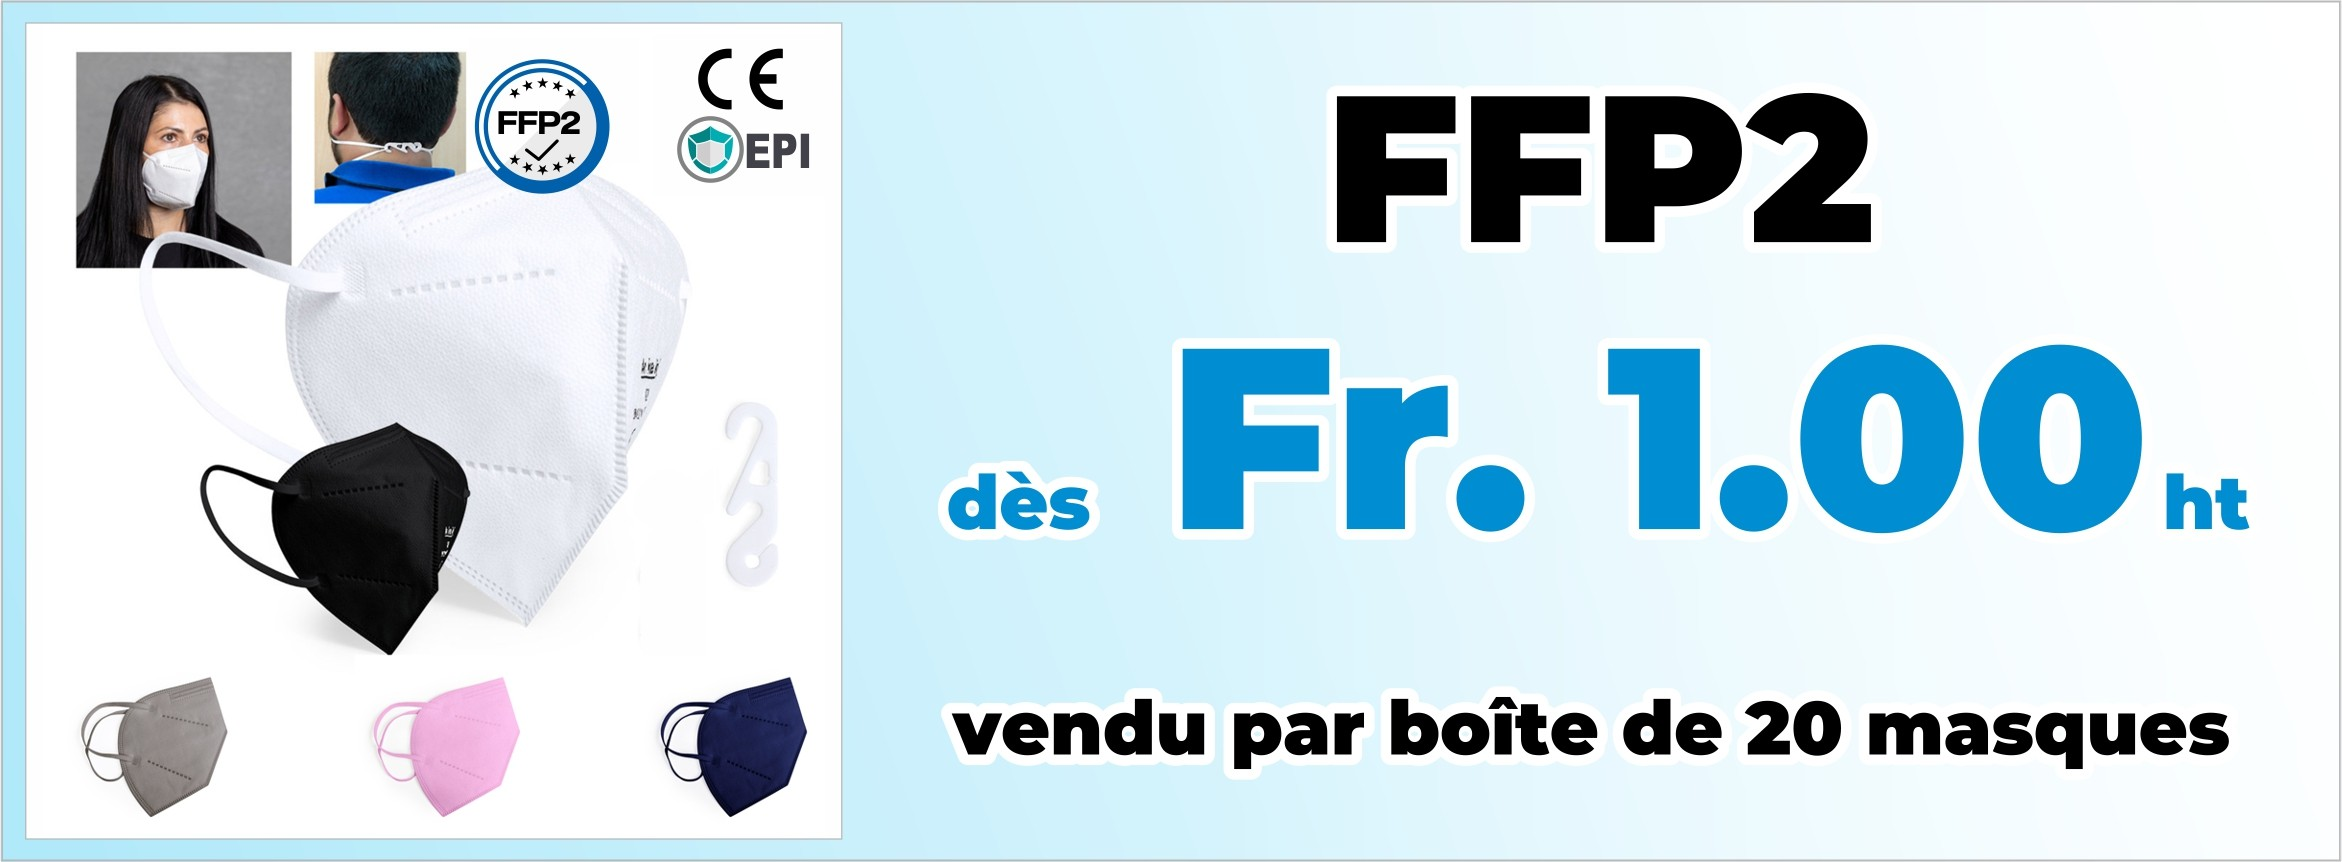 CE-certified FFP2 Mask